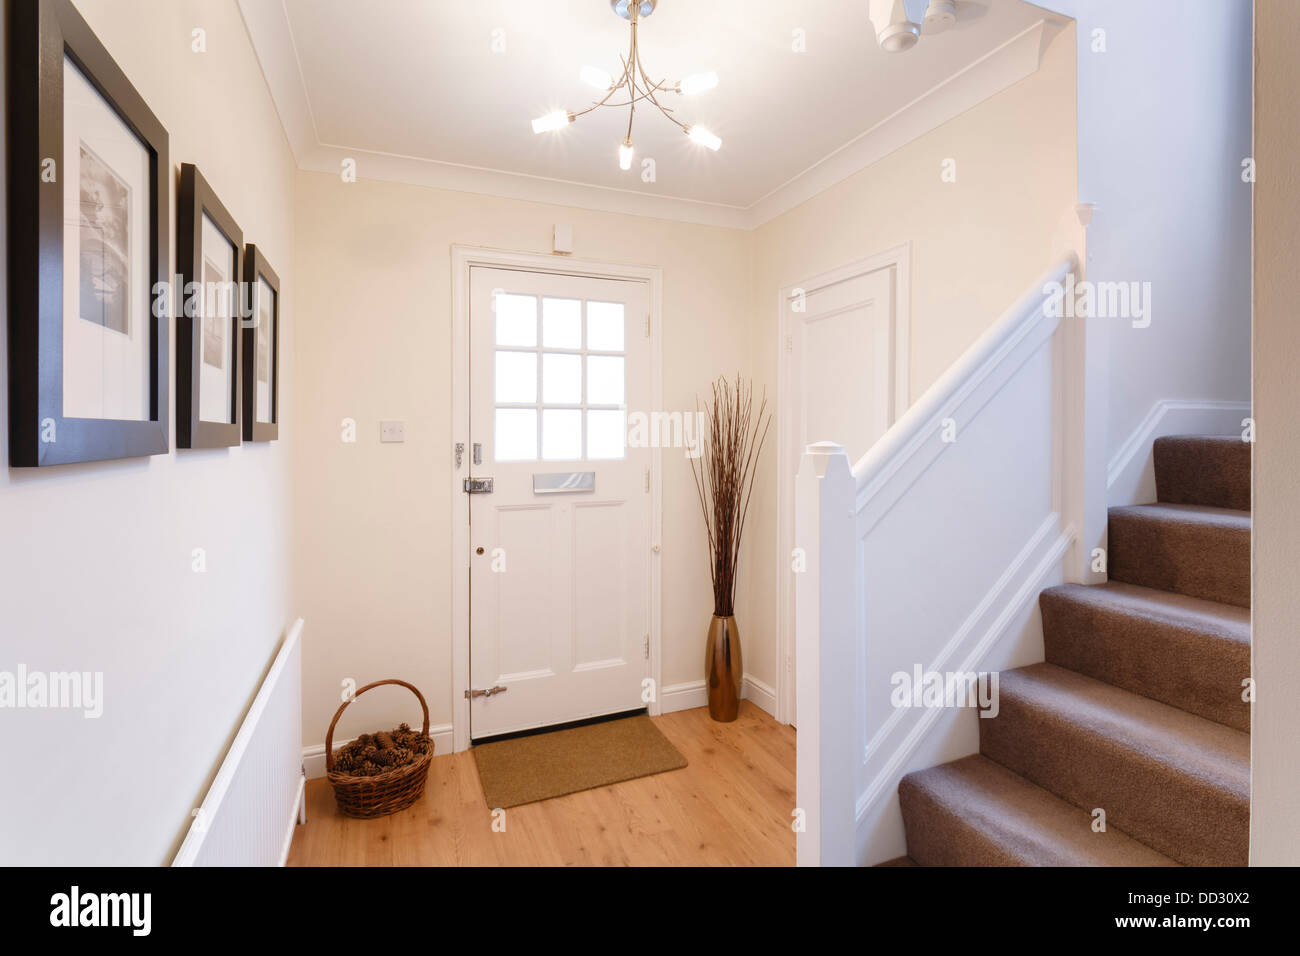 Home interior showing hallway and carpeted stairs - Stock Image